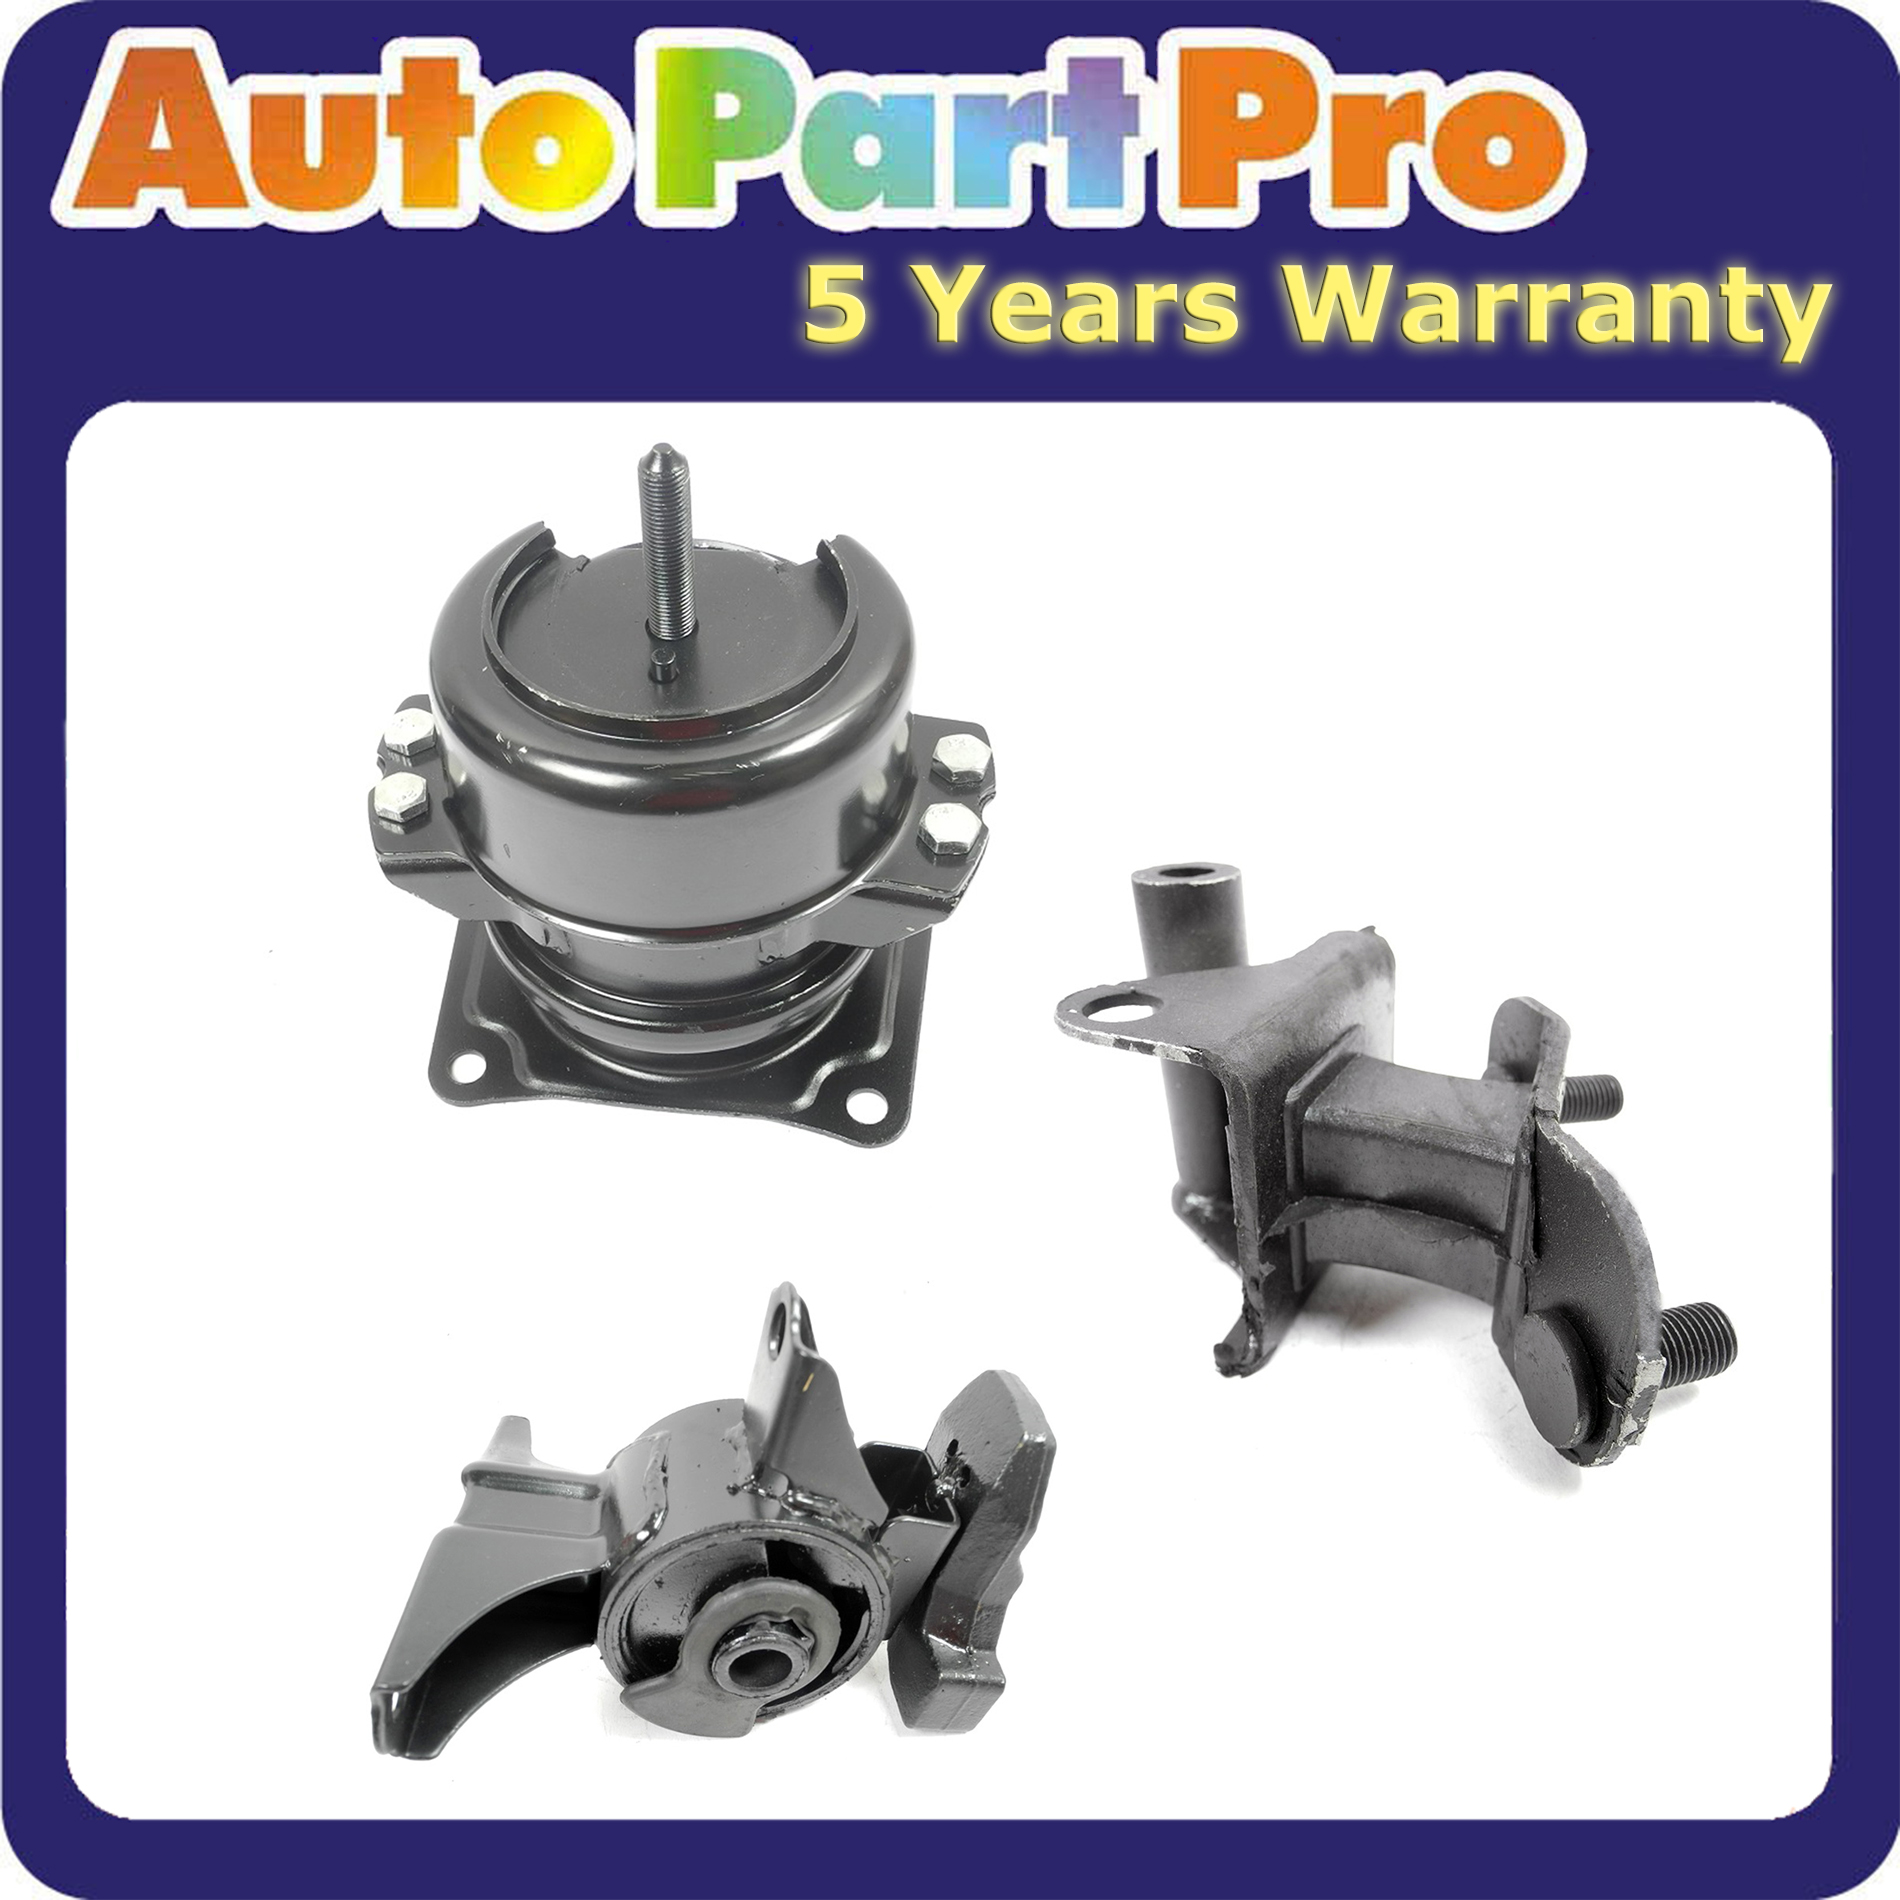 For Acura MDX Base 3.5L 03-06 Engine Motor & Trans Mount